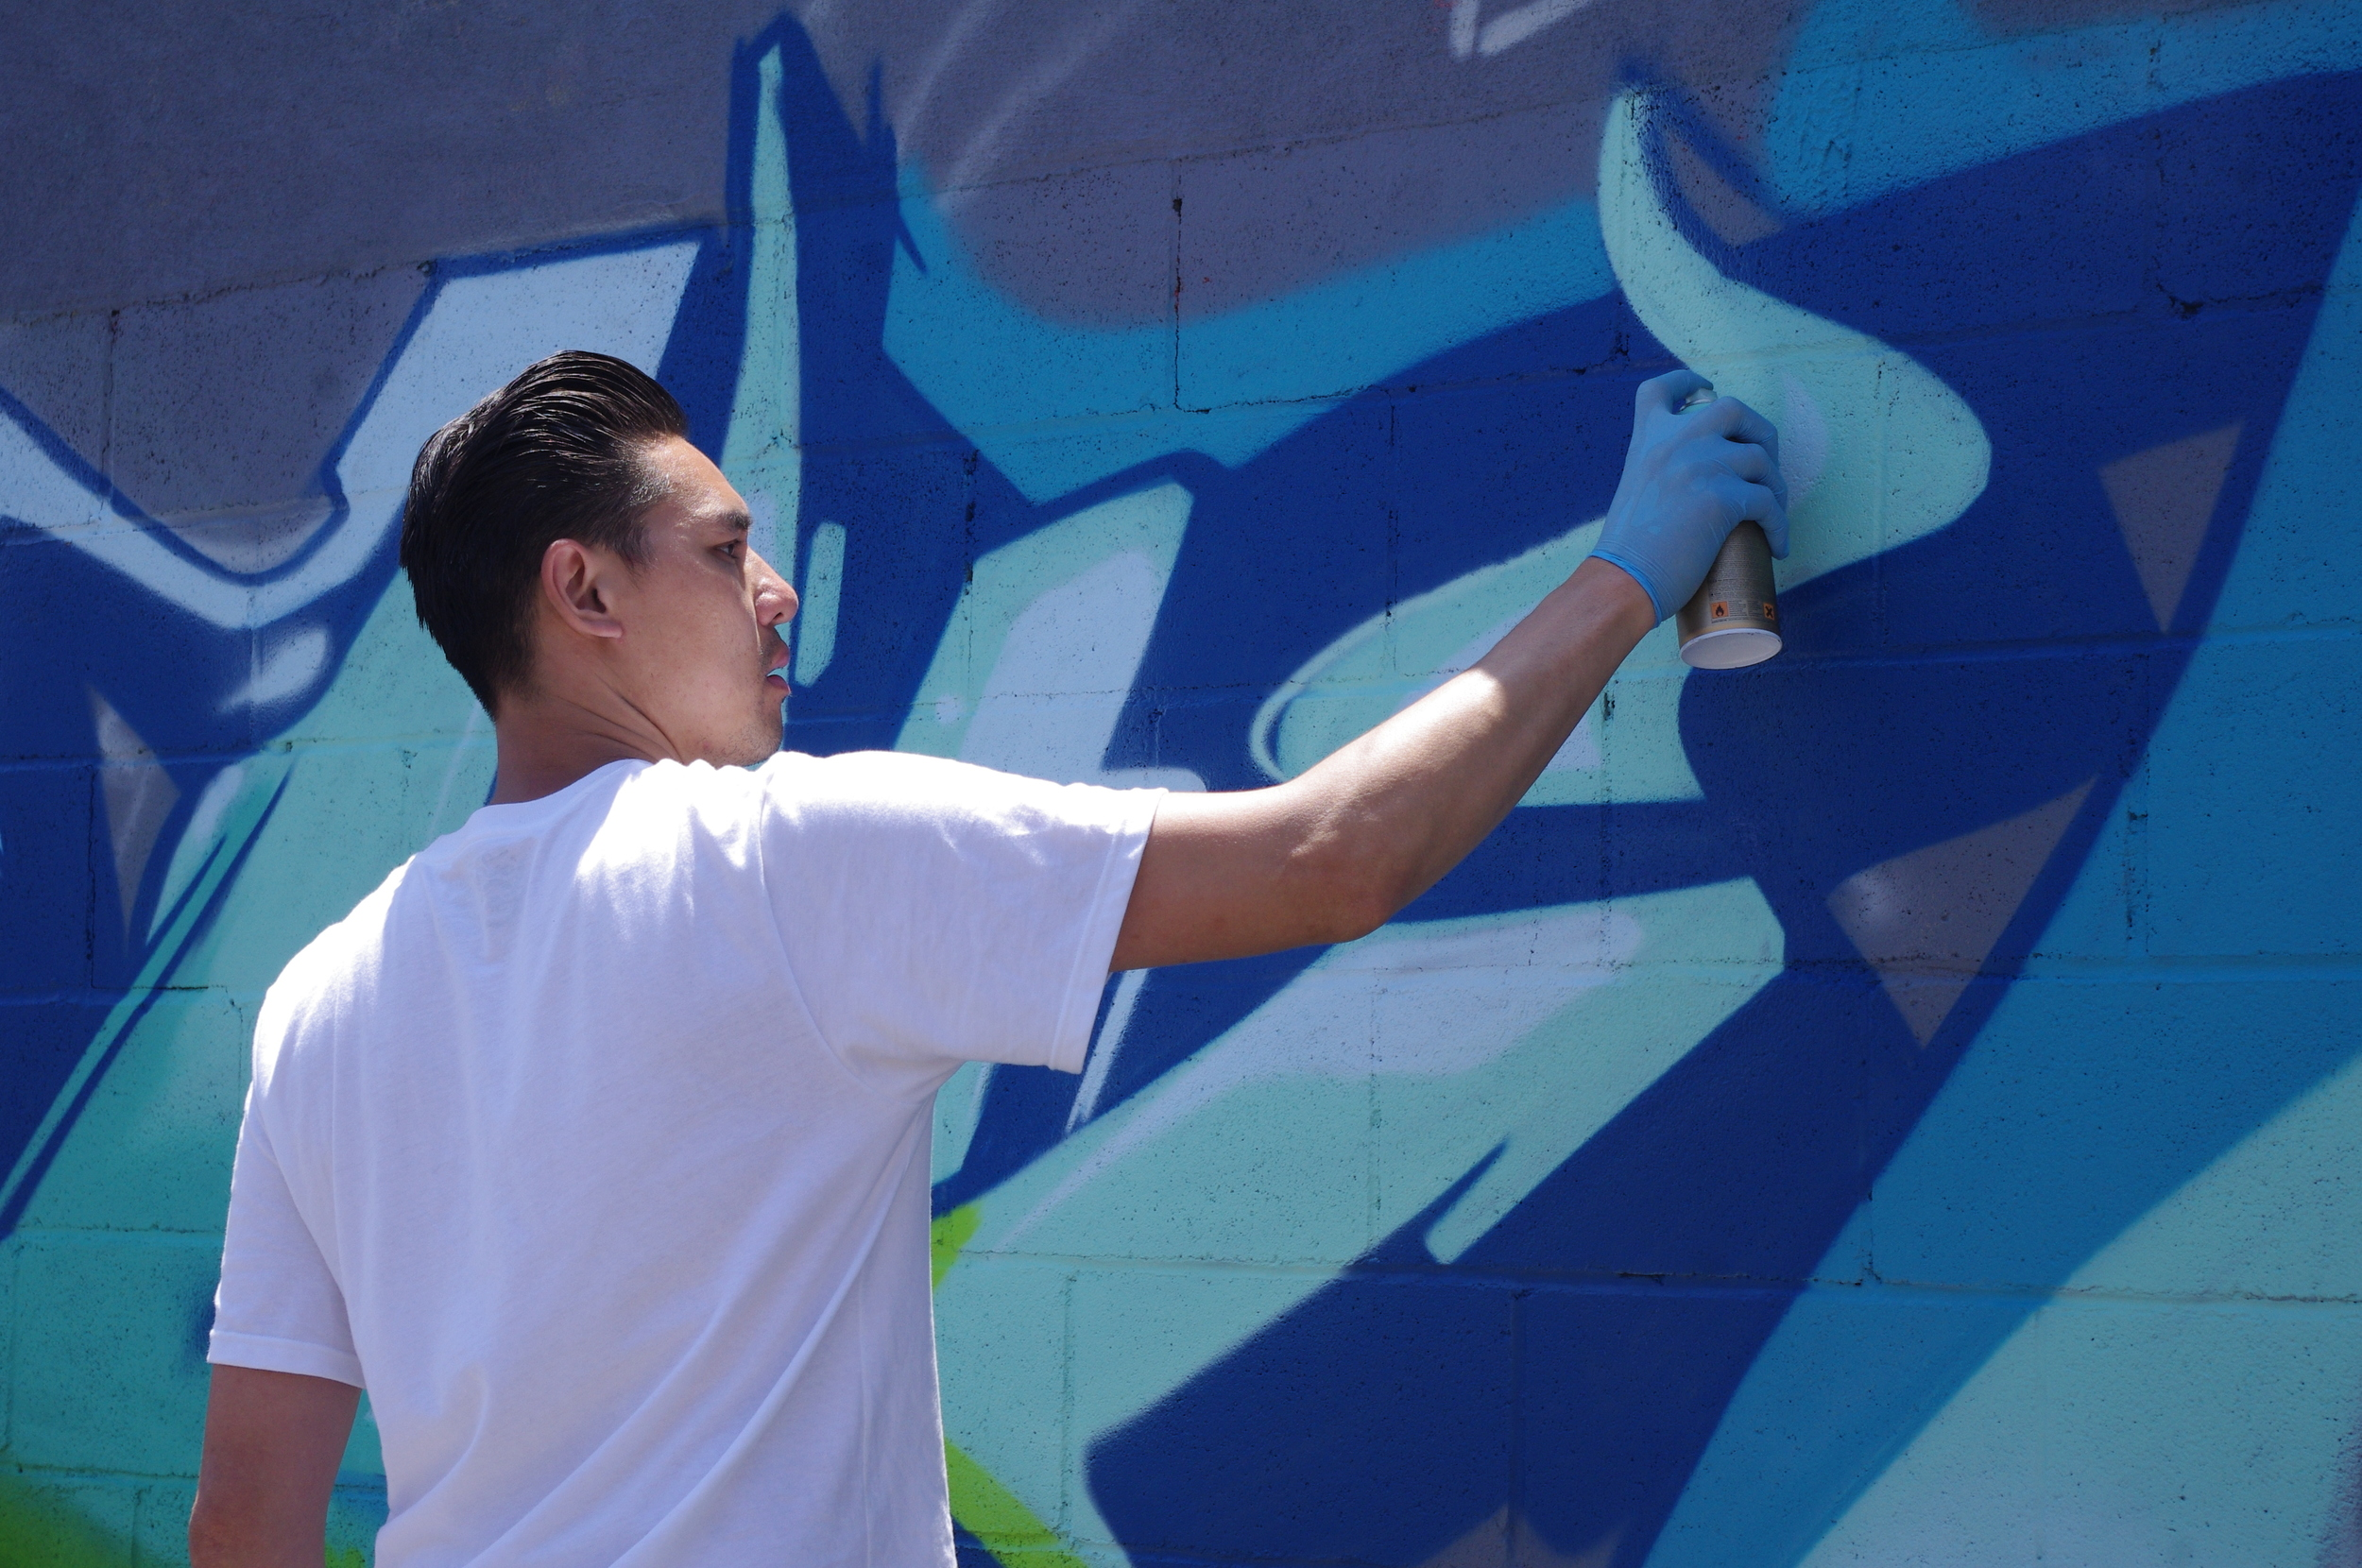 Tyke Witnes, whose works have been shown in galleries around the world, got his start in graffiti. | Photo by Linda Domingo